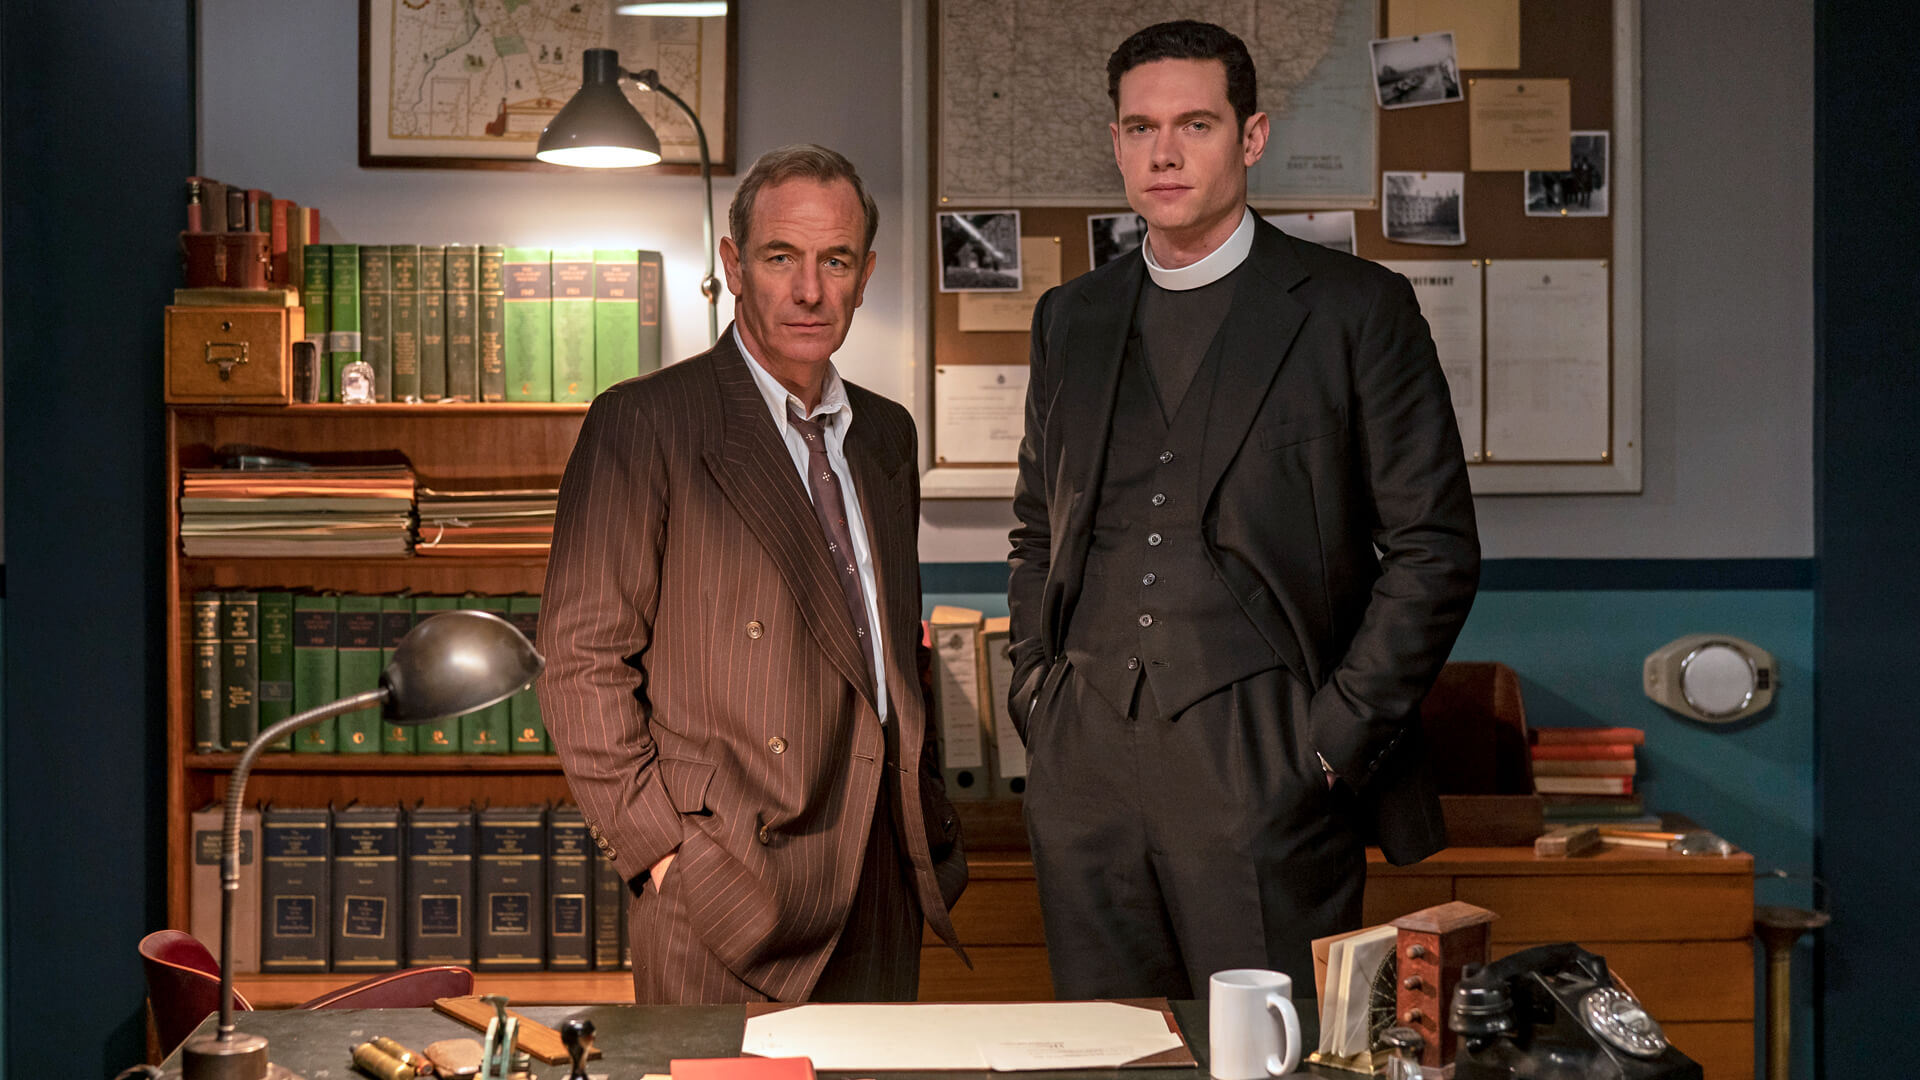 Actors Robson Green and Tom Brittney from the TV series, Grantchester